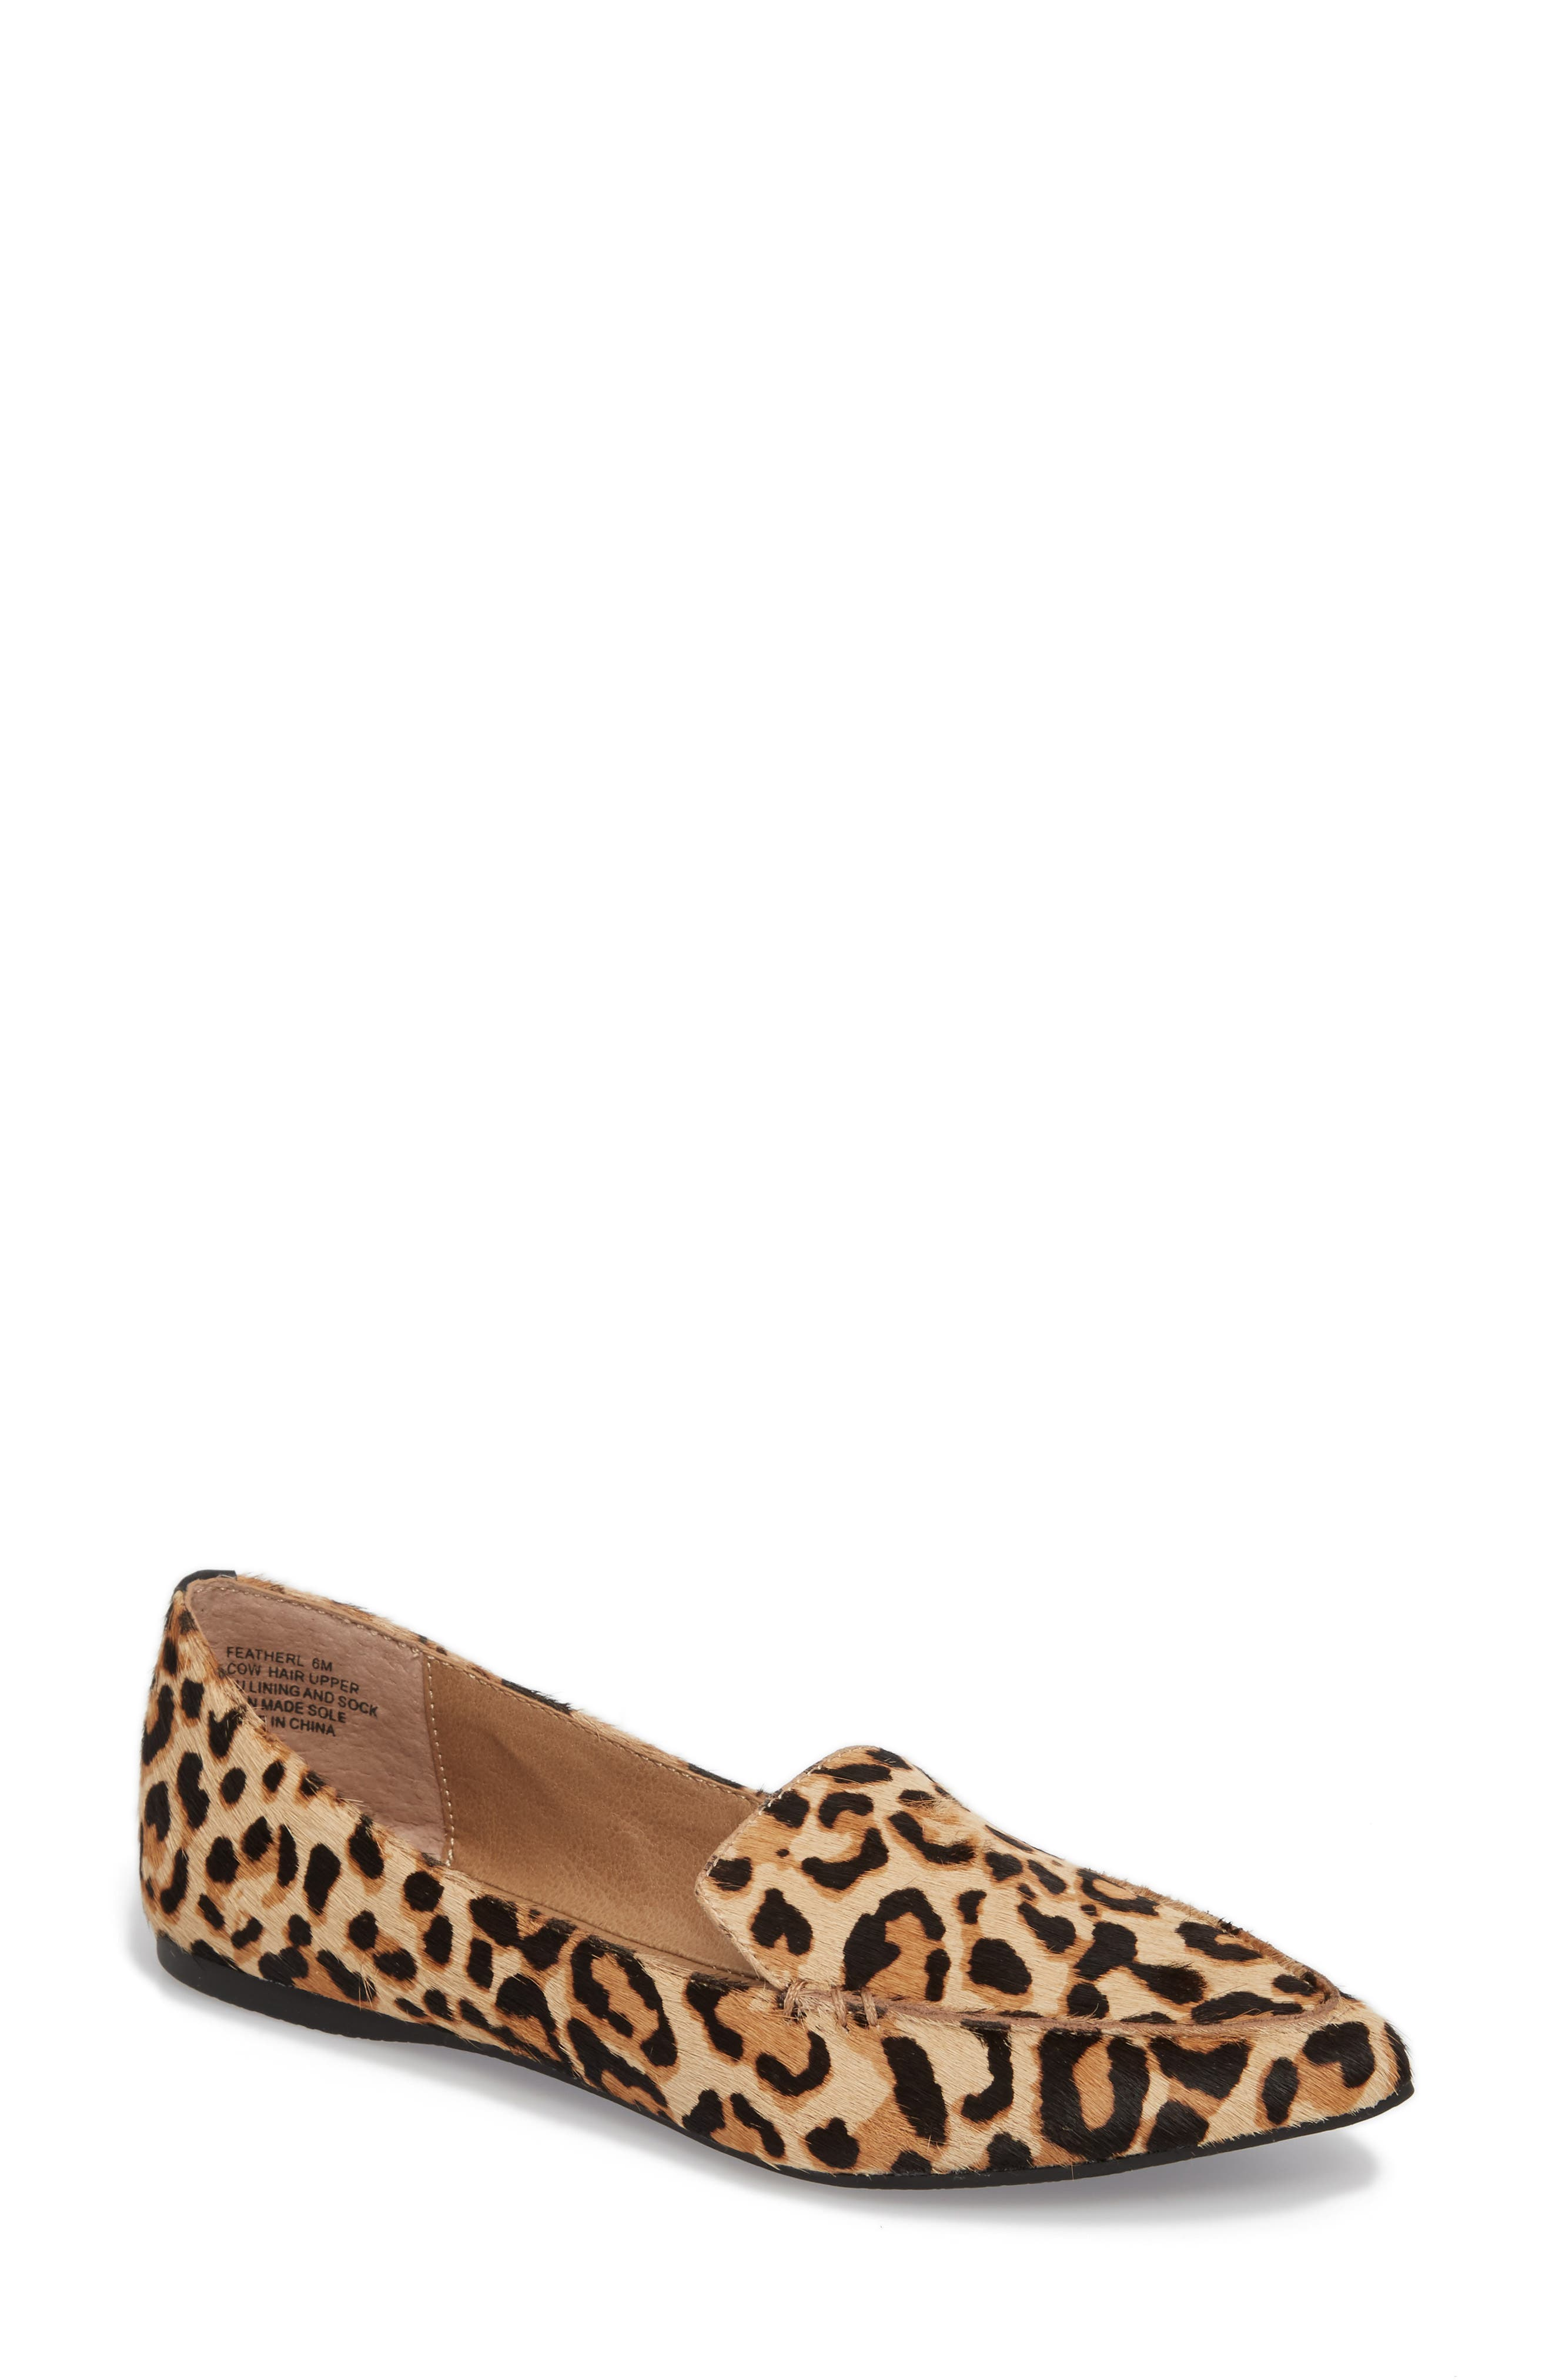 Main Image - Steve Madden Feather-L Genuine Calf Hair Loafer Flat (Women)